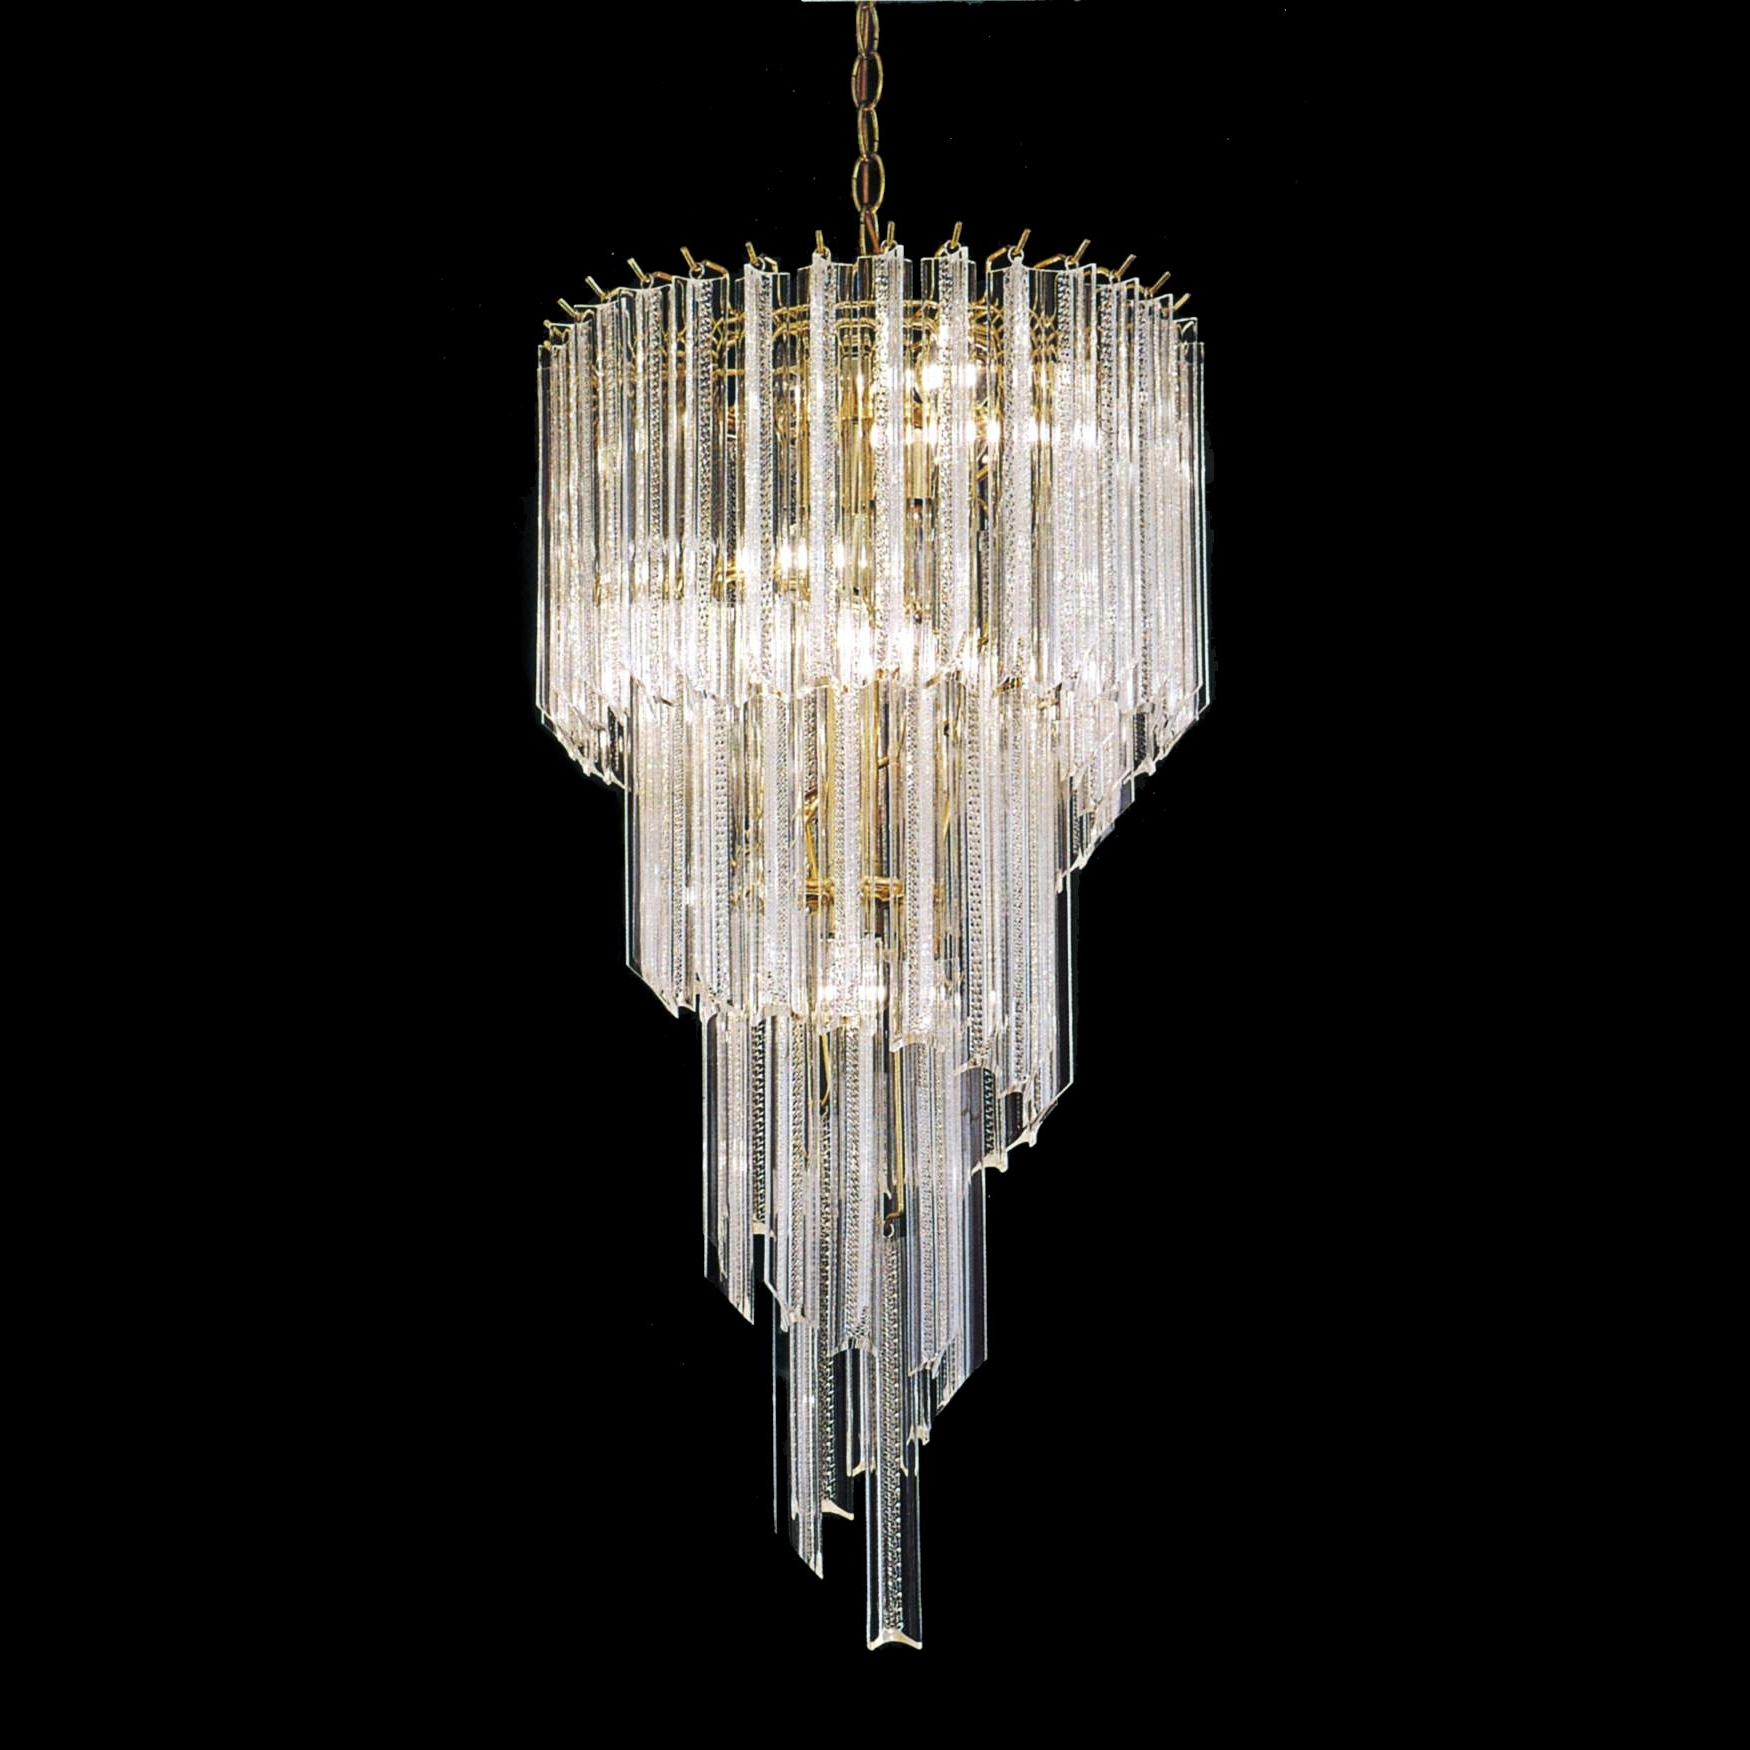 Acrylic Chandeliers For Recent Chandeliers Design : Marvelous Acrylic Light Polished Brass Spiral (Gallery 8 of 20)